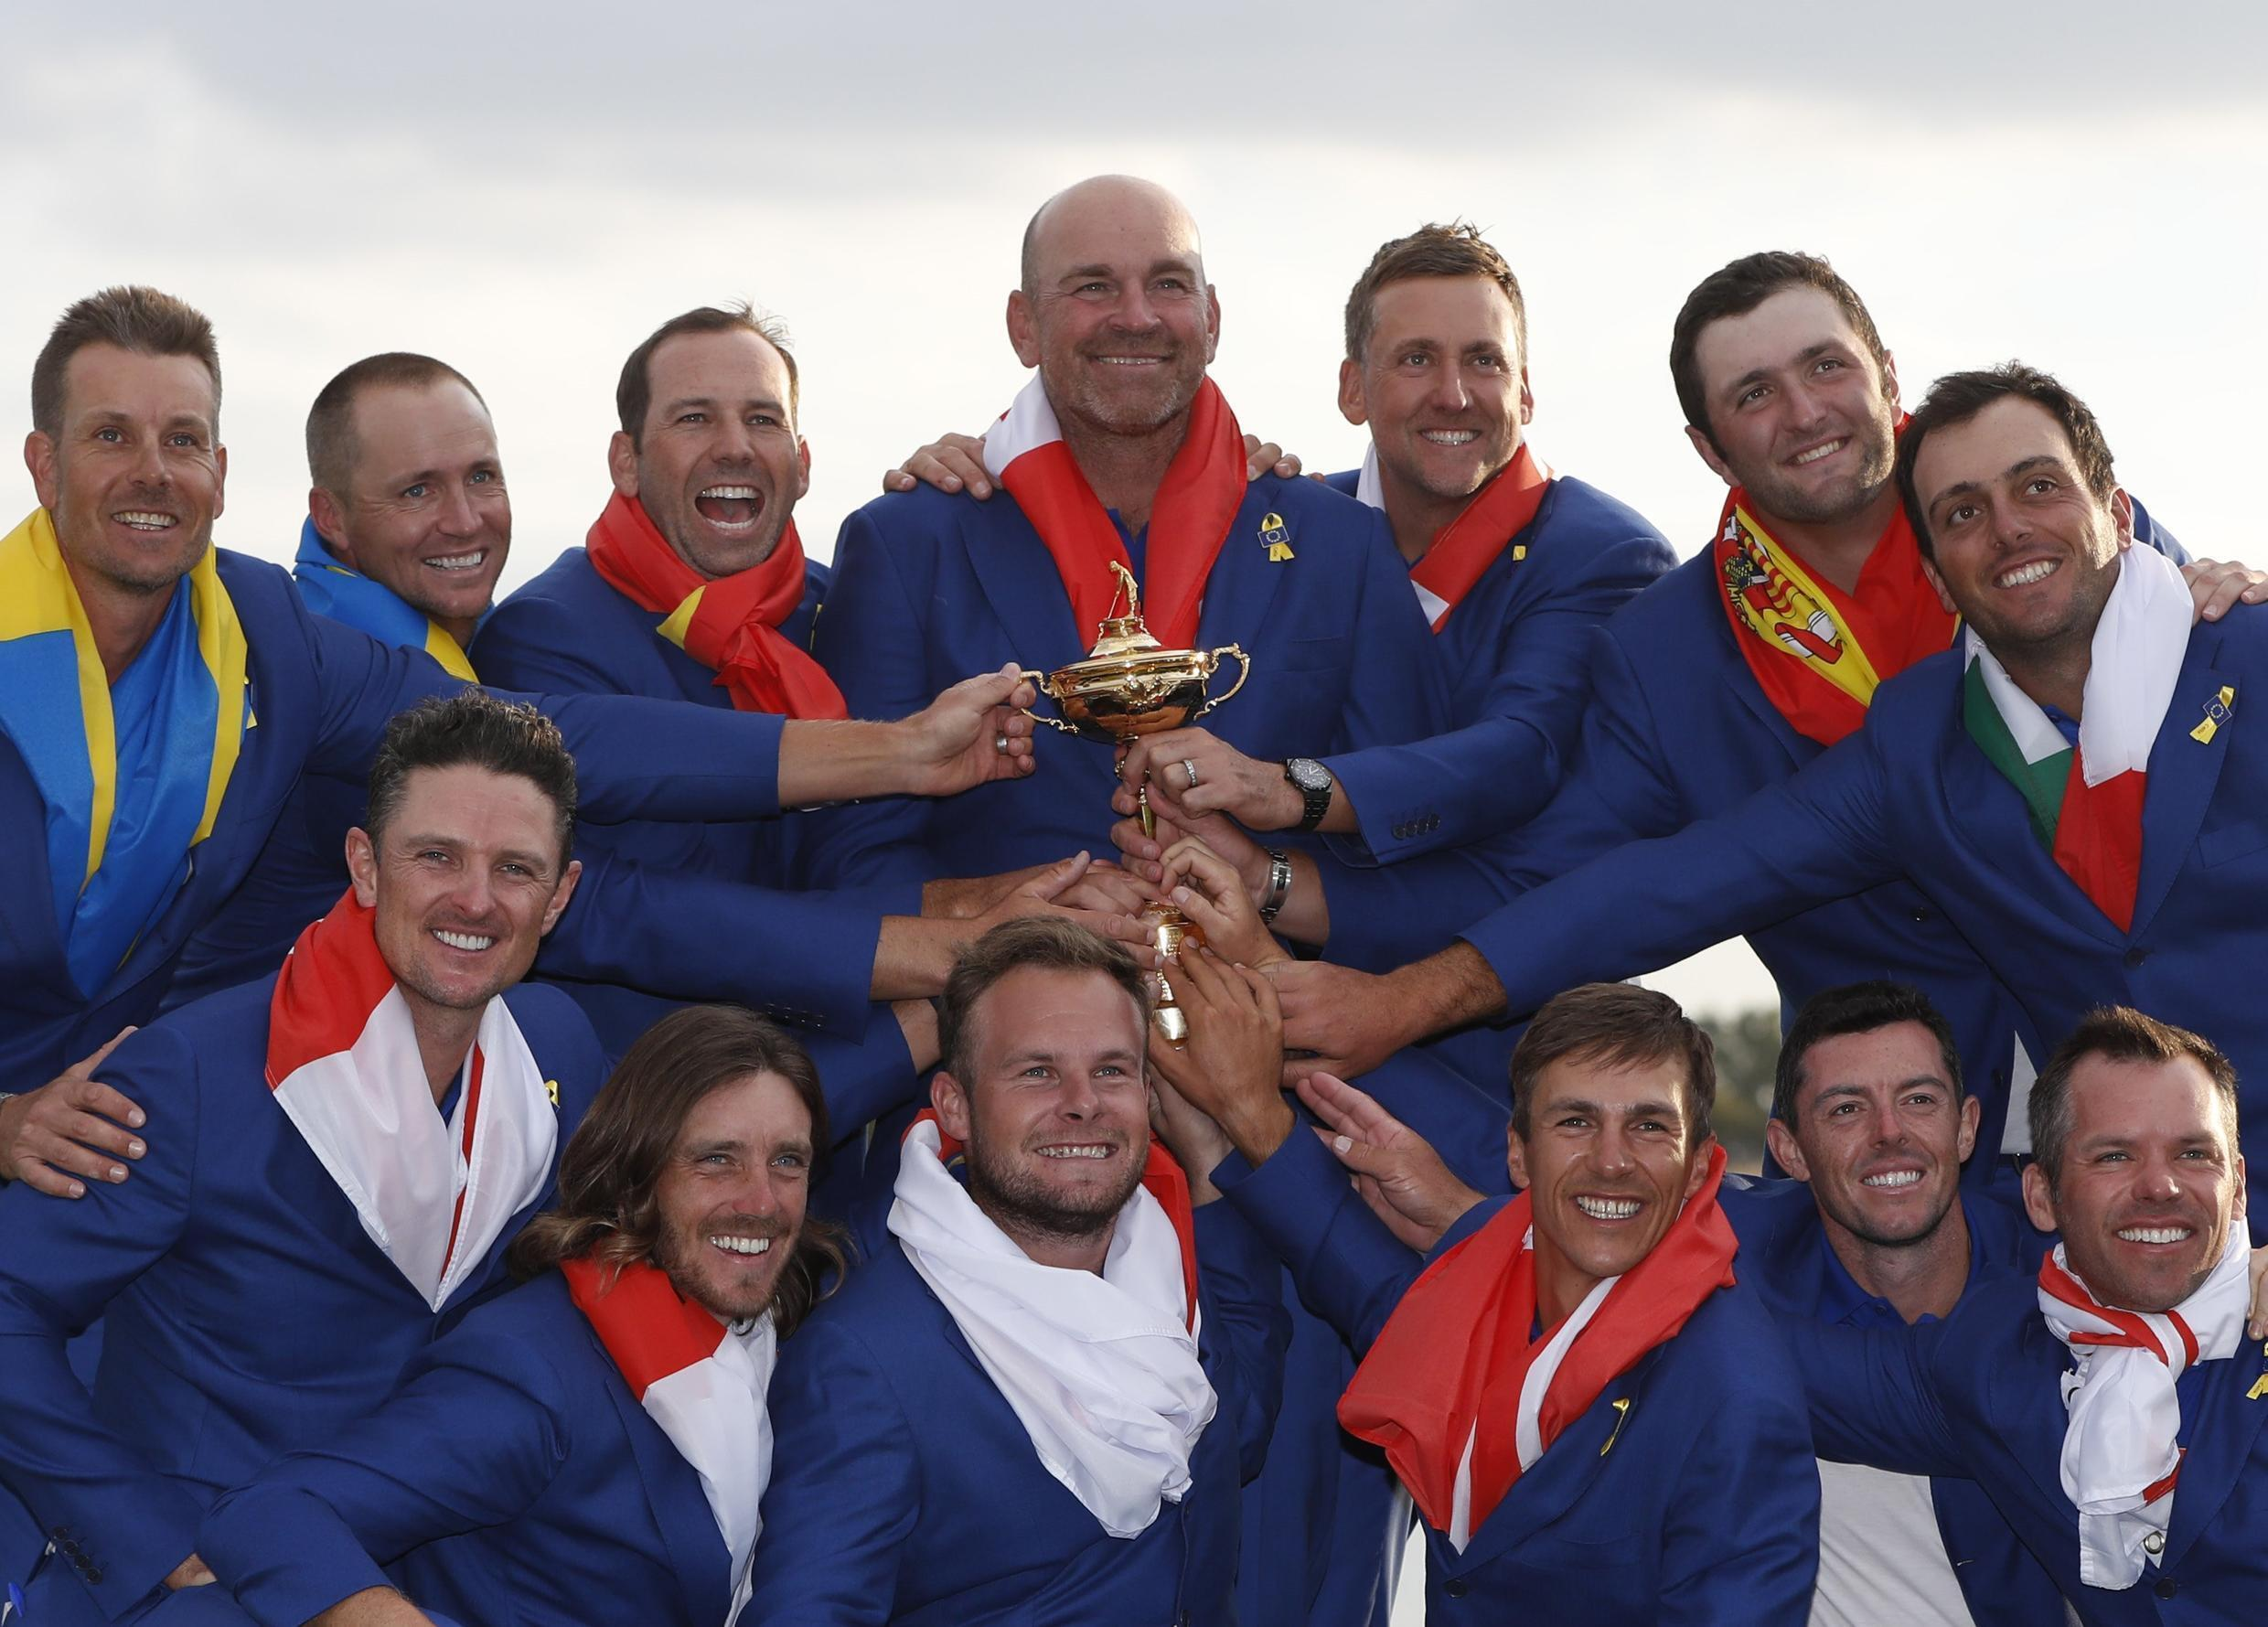 Europe's leading golfers claimed the 2018 Ryder Cup at Le Golf National just outside Paris.